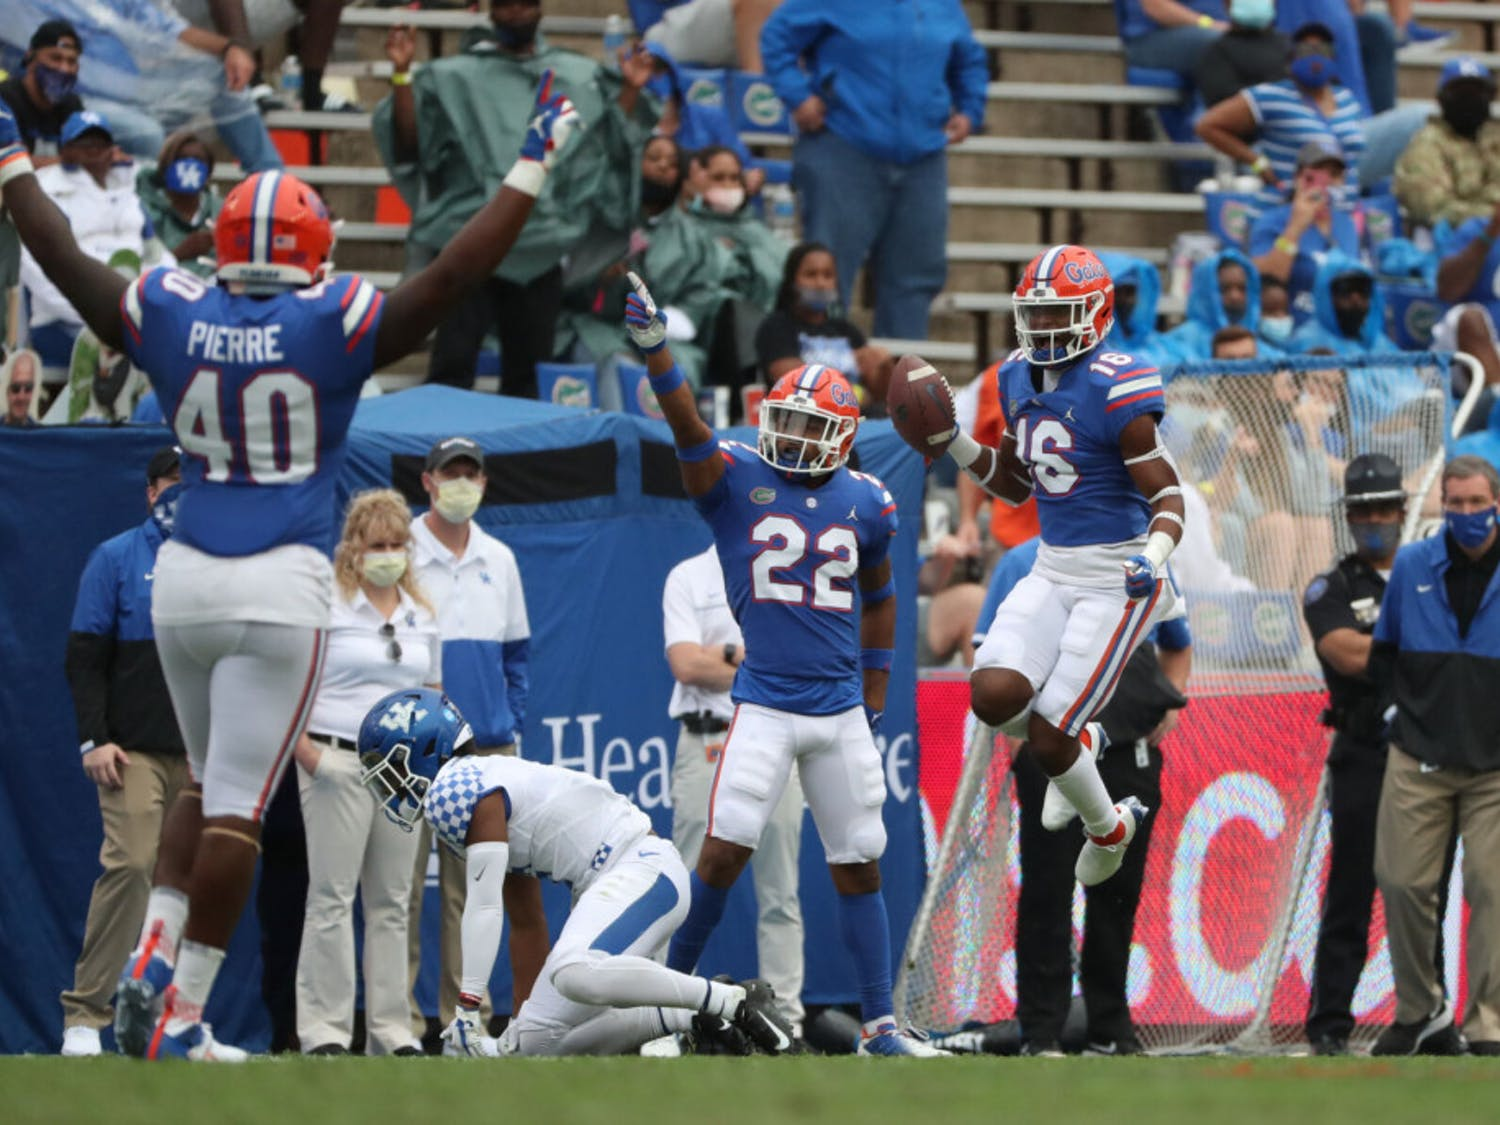 Tre'Vez Johnson (16), Jesiah Pierre (40) and Rashad Torrence II (22) celebrate in the Gators game against Kentucky in The Swamp on Nov. 28.